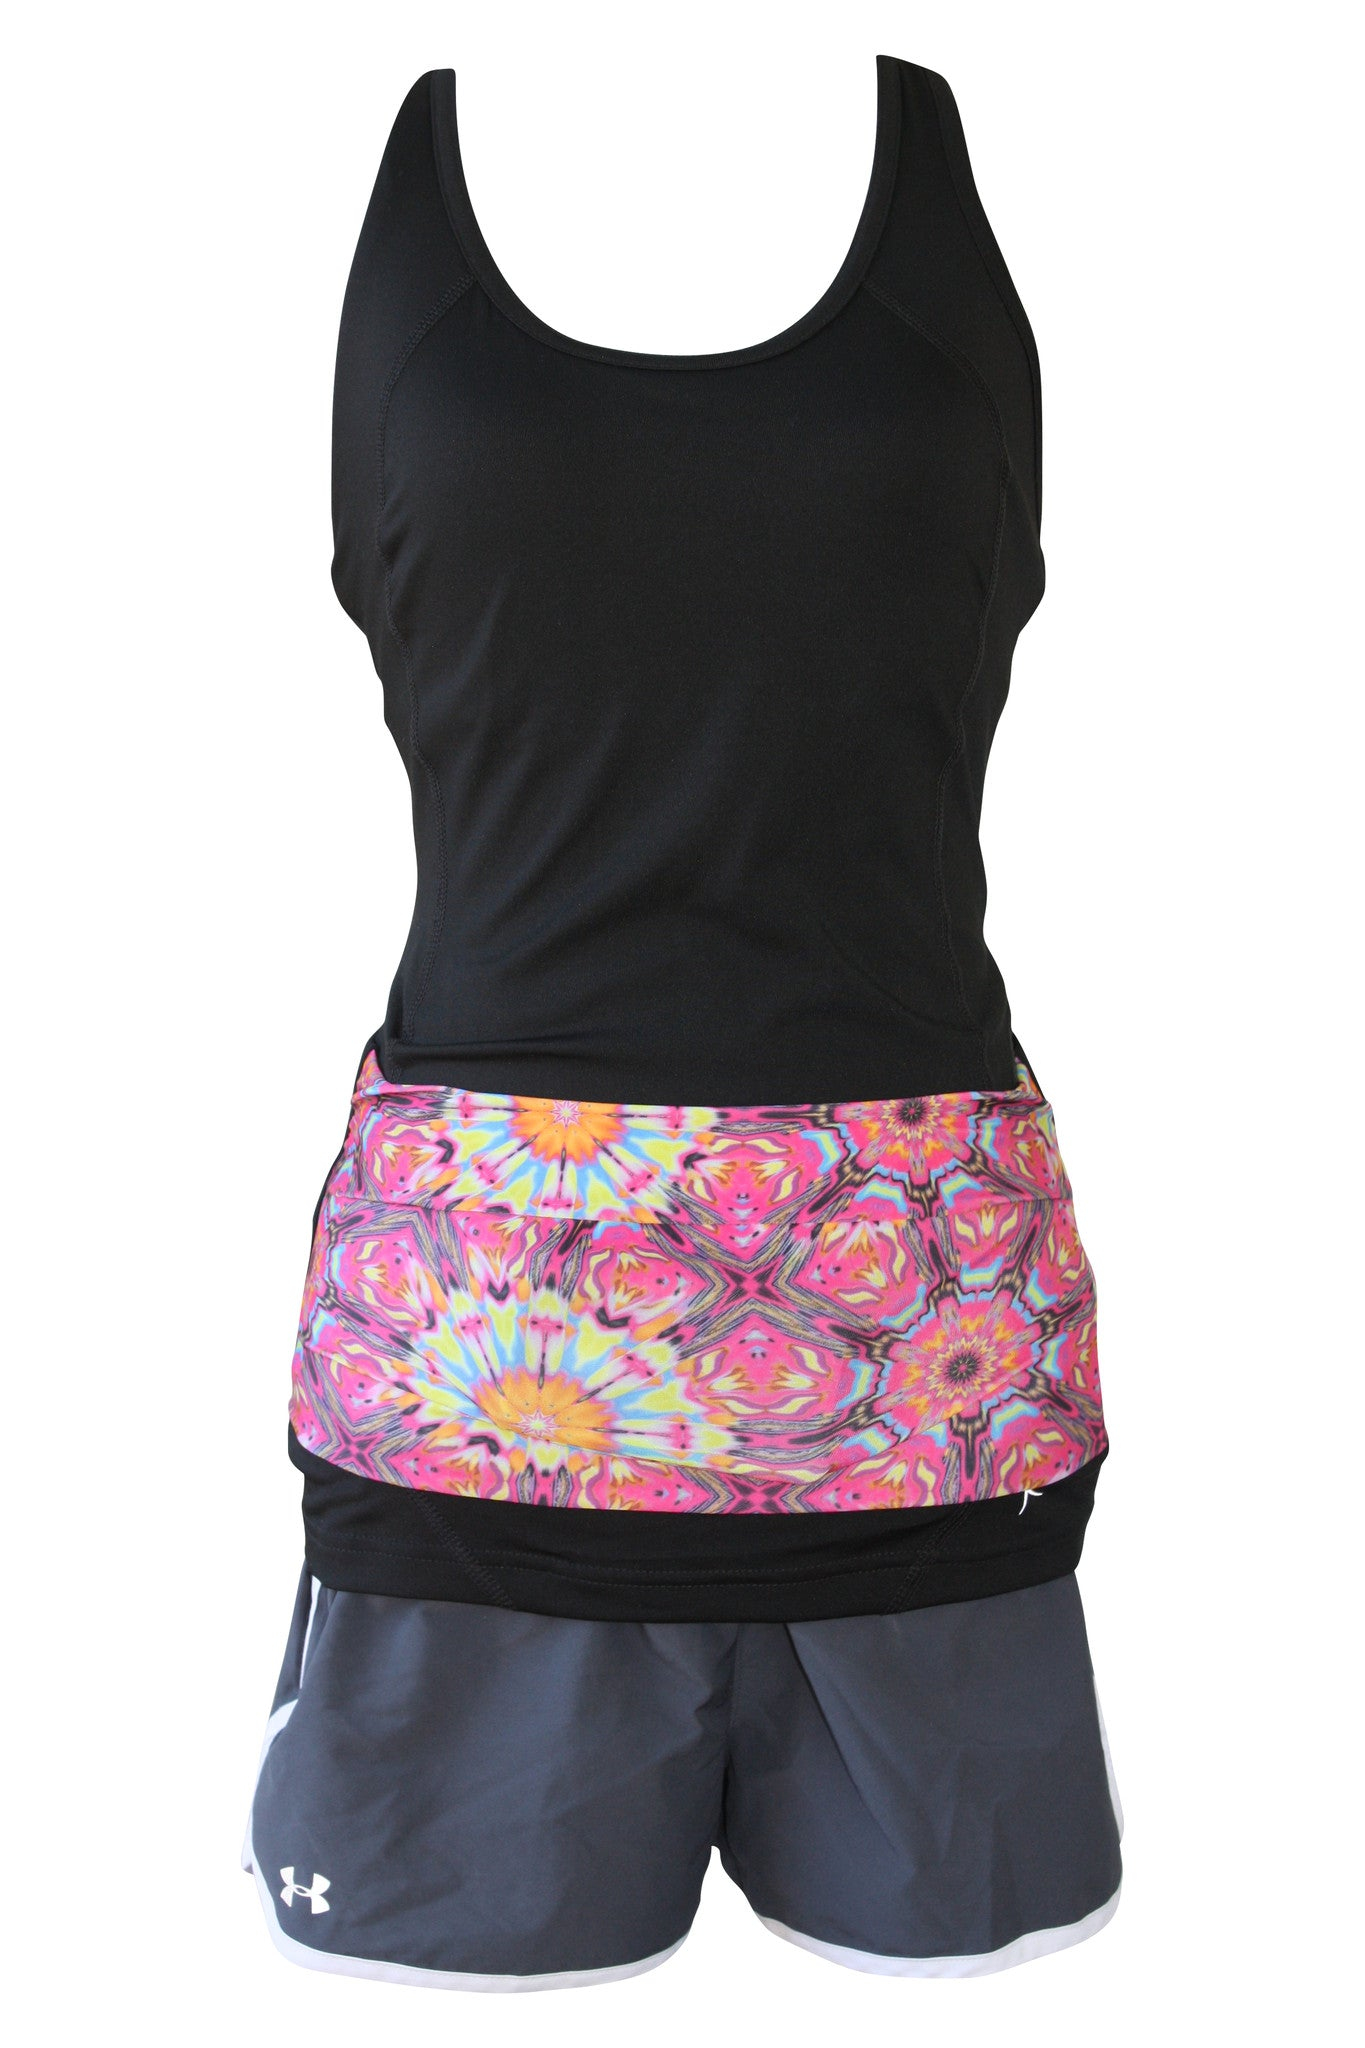 Kaleidoscope Running Belt - speedzter  - 4